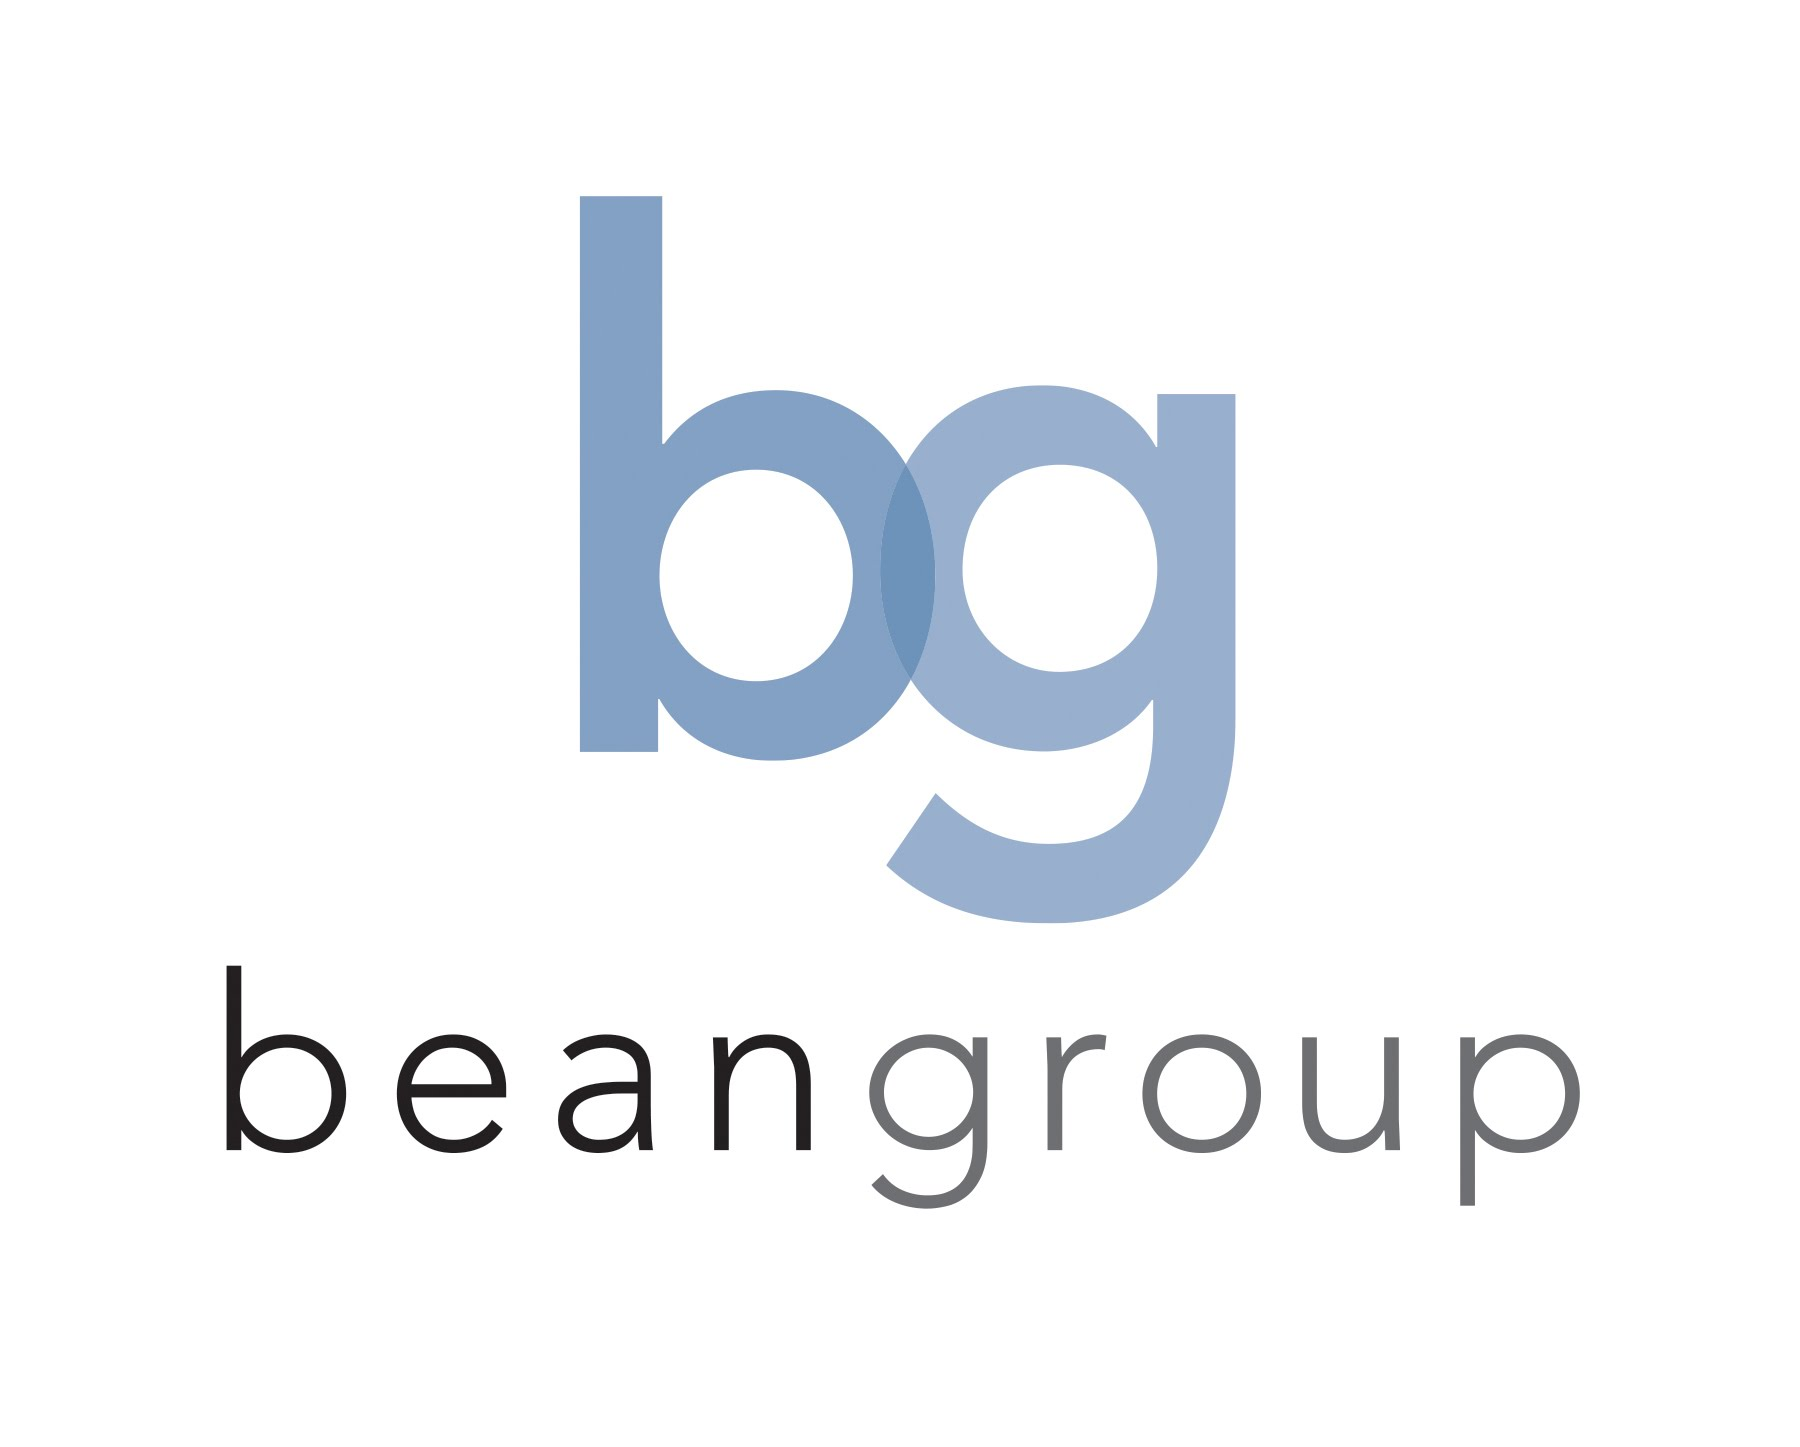 The Bean Group logo